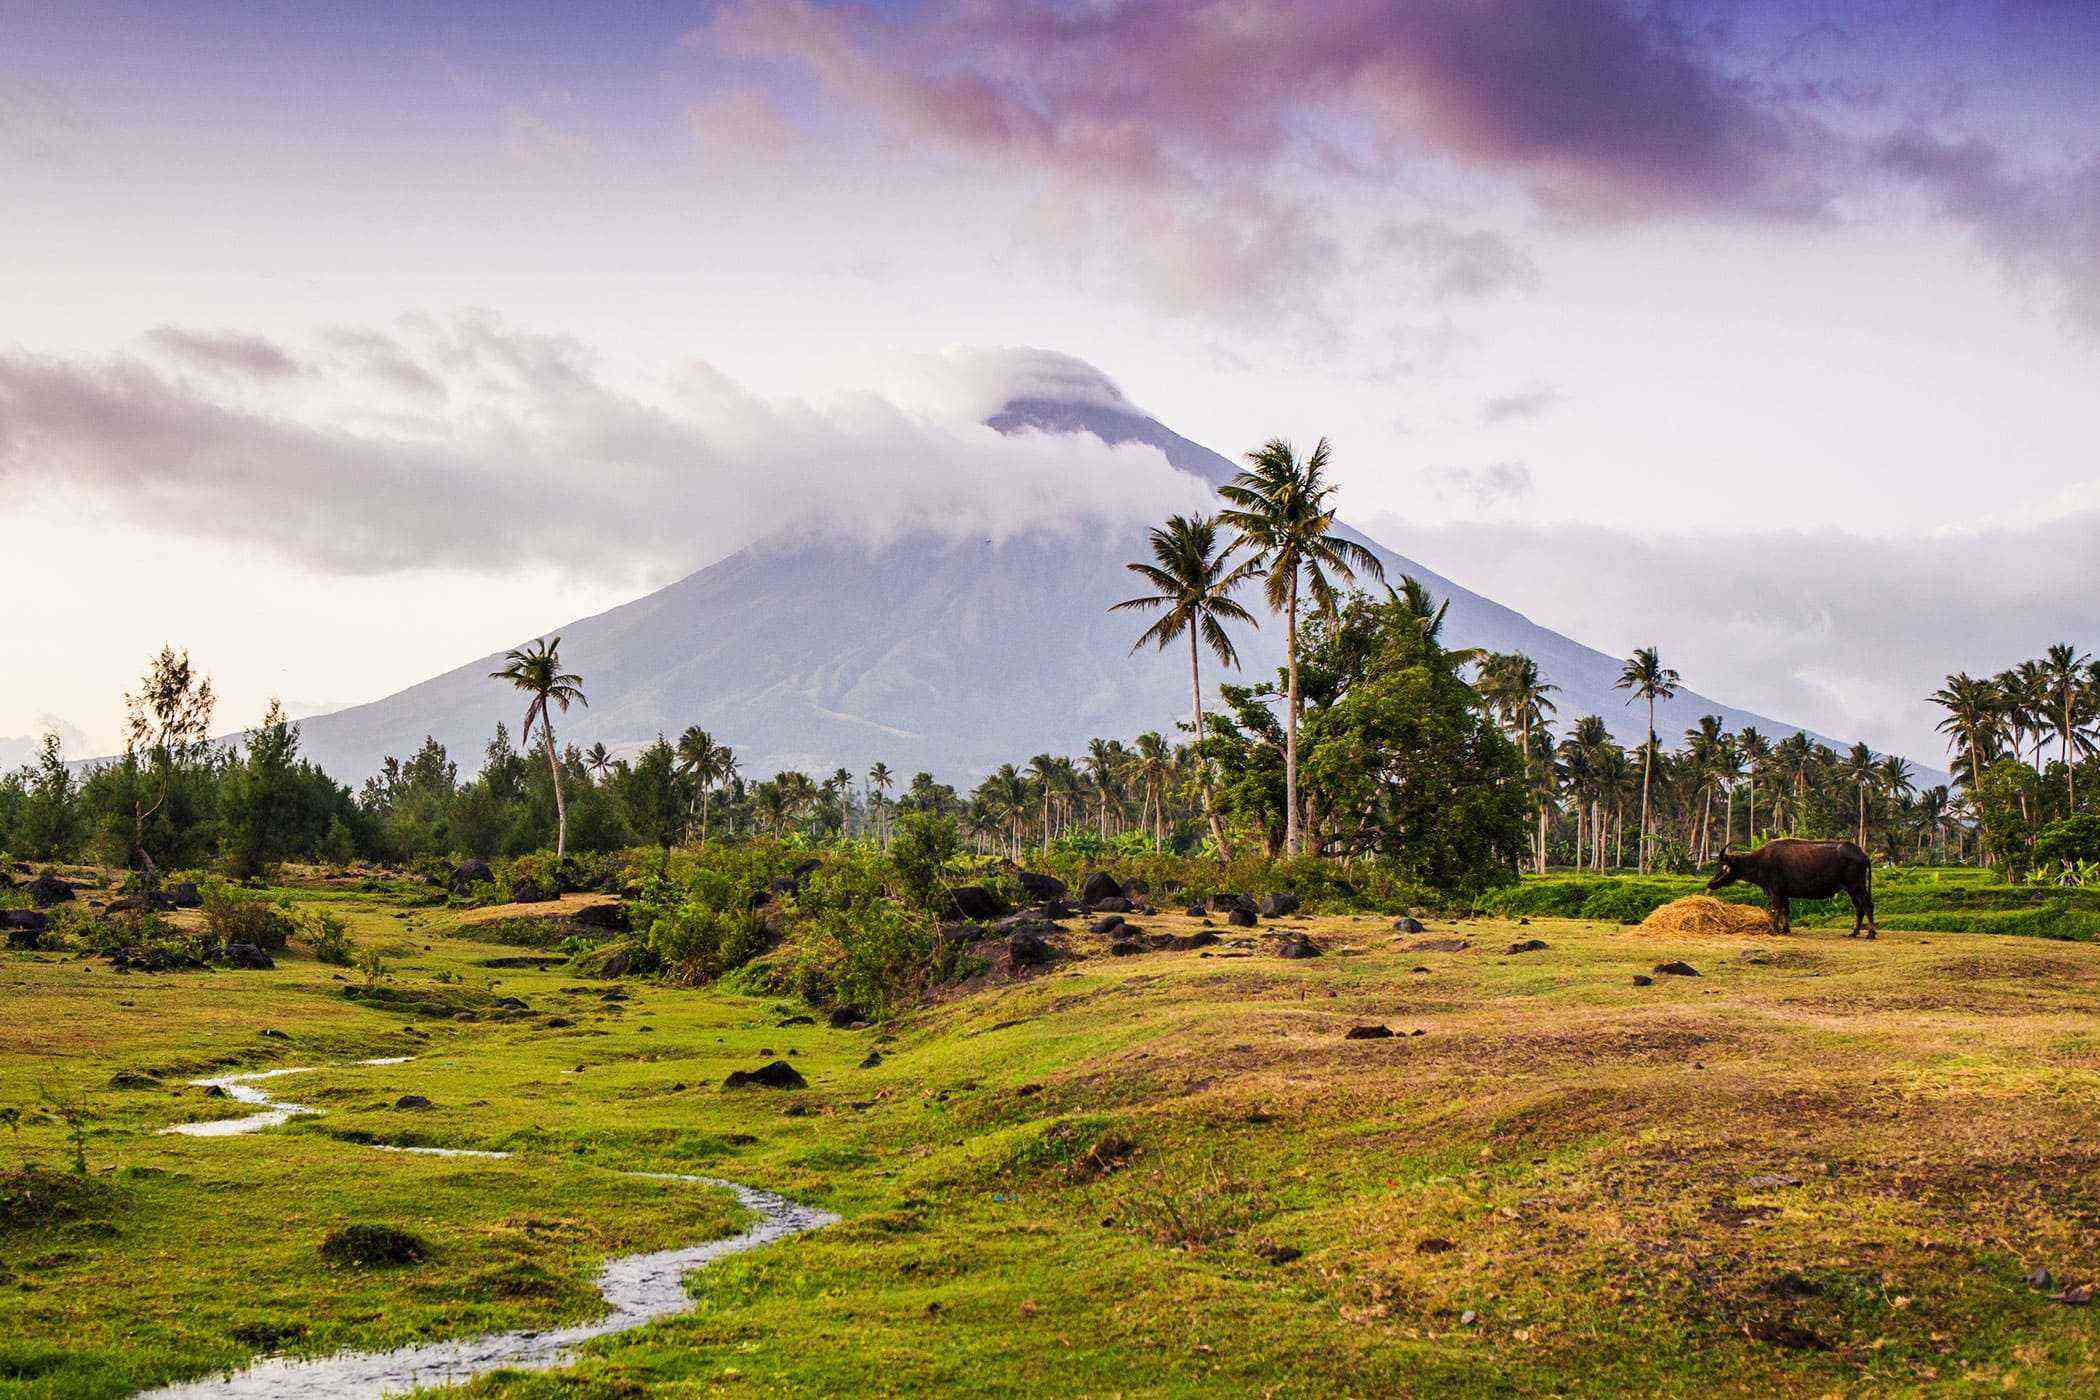 Natural-Philippines-Mount-Mayon